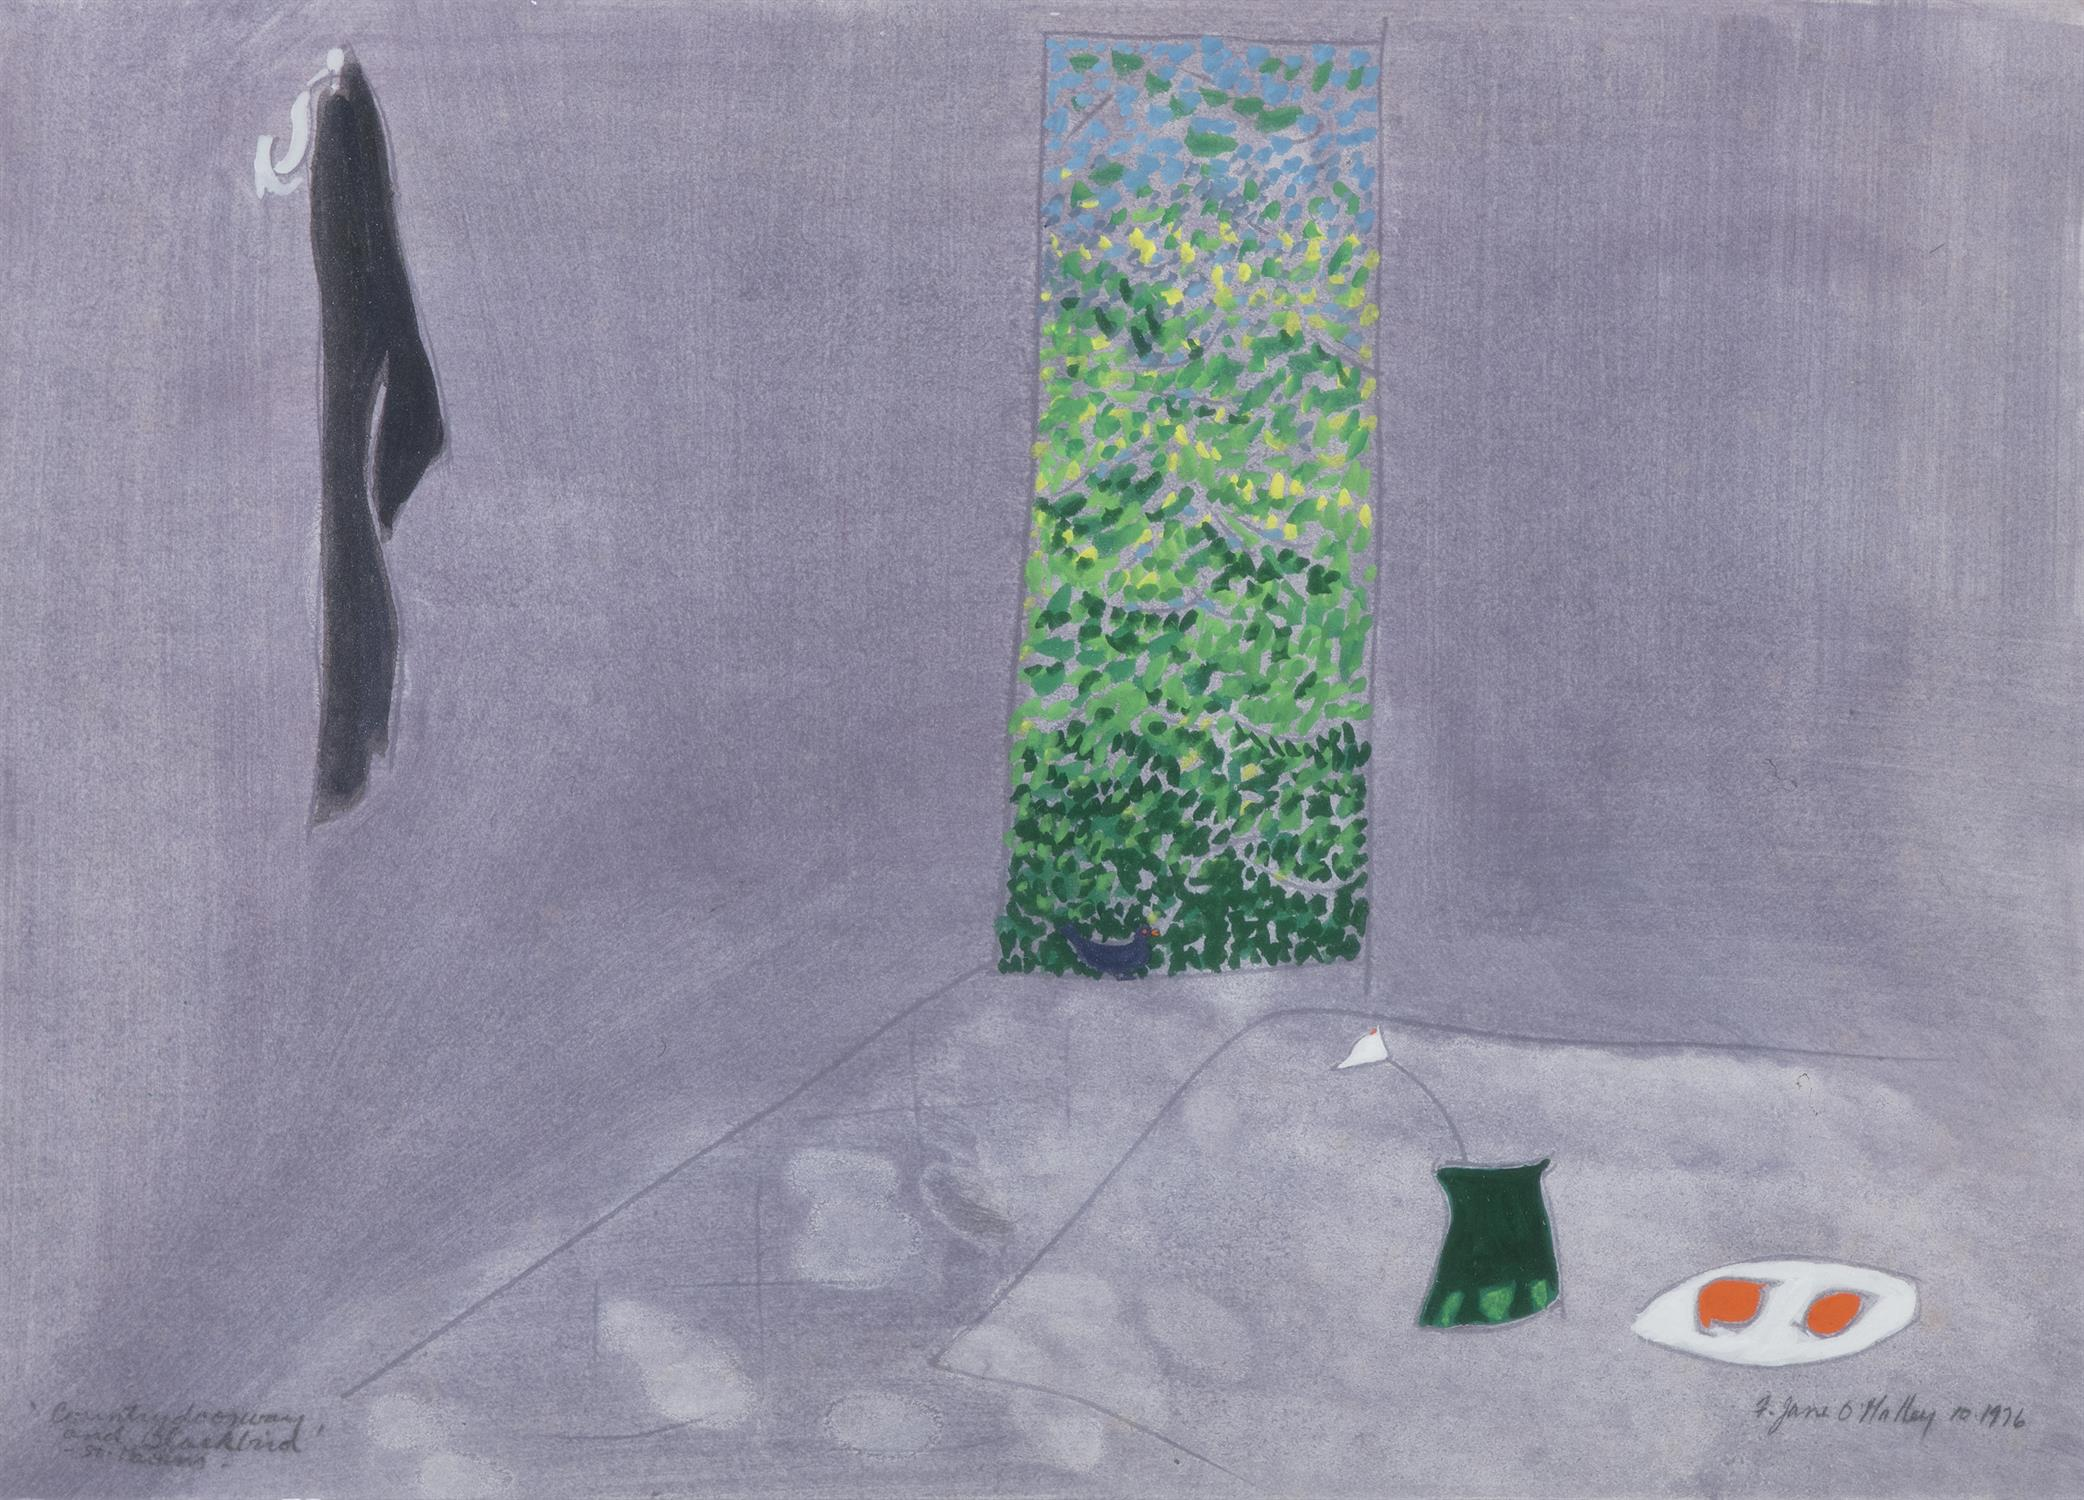 Jane O'Malley (b.1944) Country Doorway and Blackbird, St. Martin's Mixed media on board,